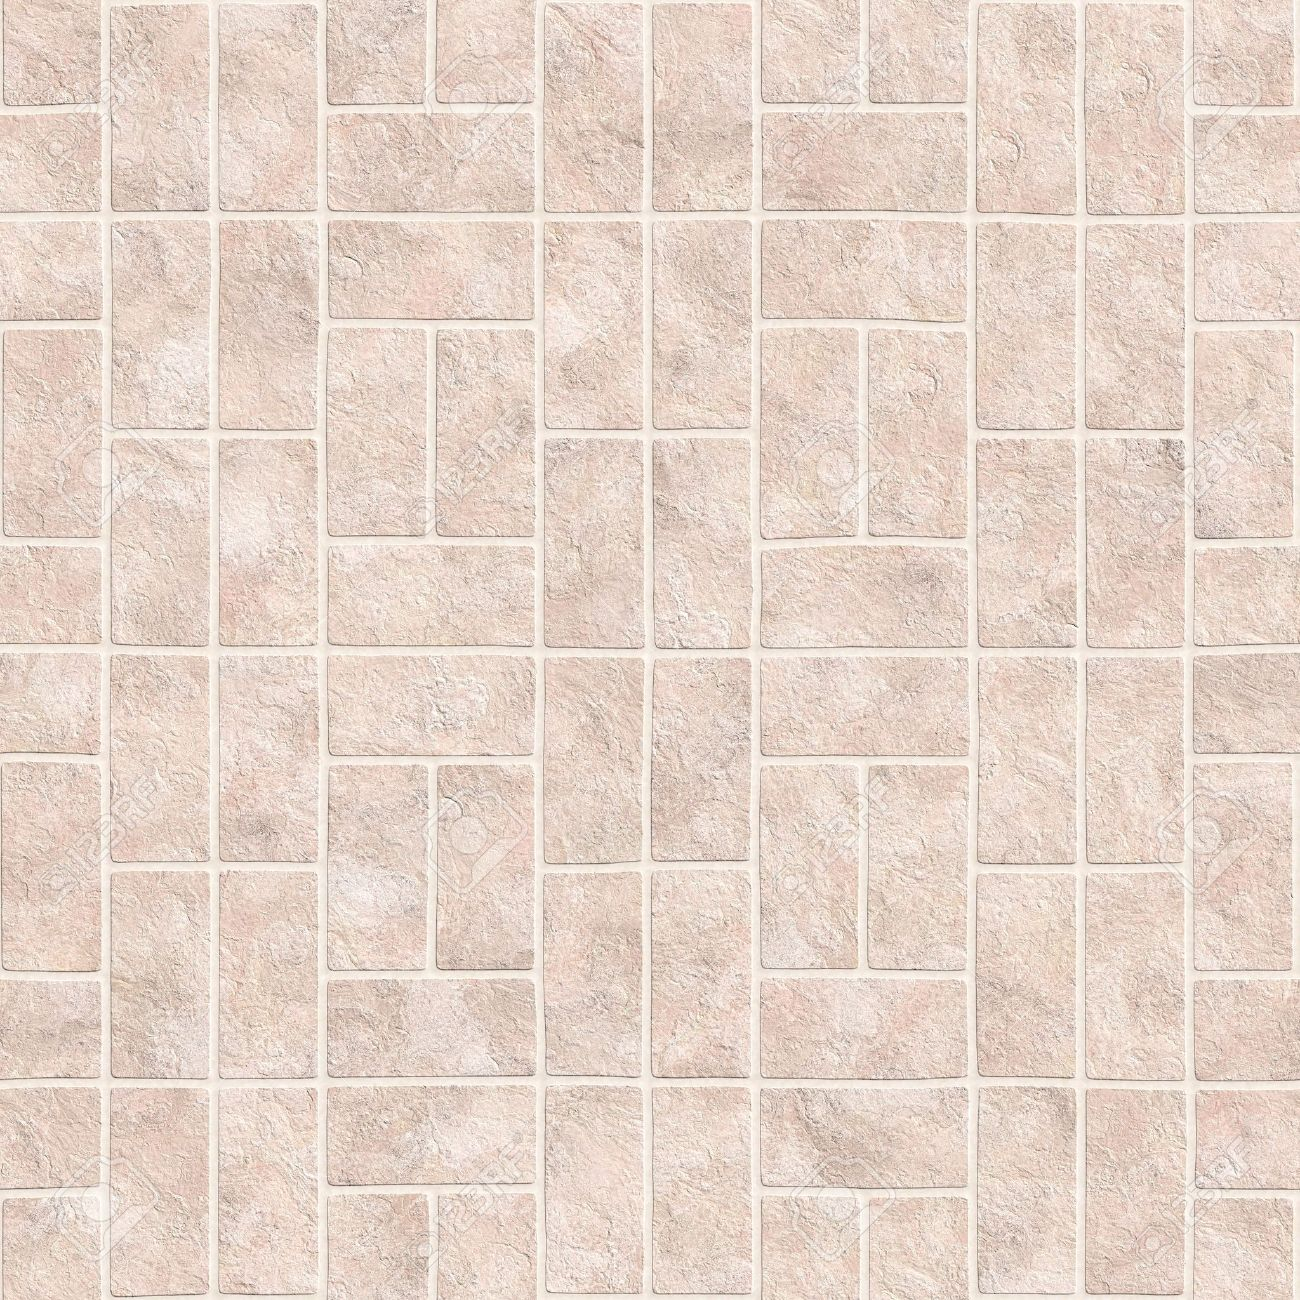 Bathroom Or Kitchen Tiles Texture In Square Format Stock Photo